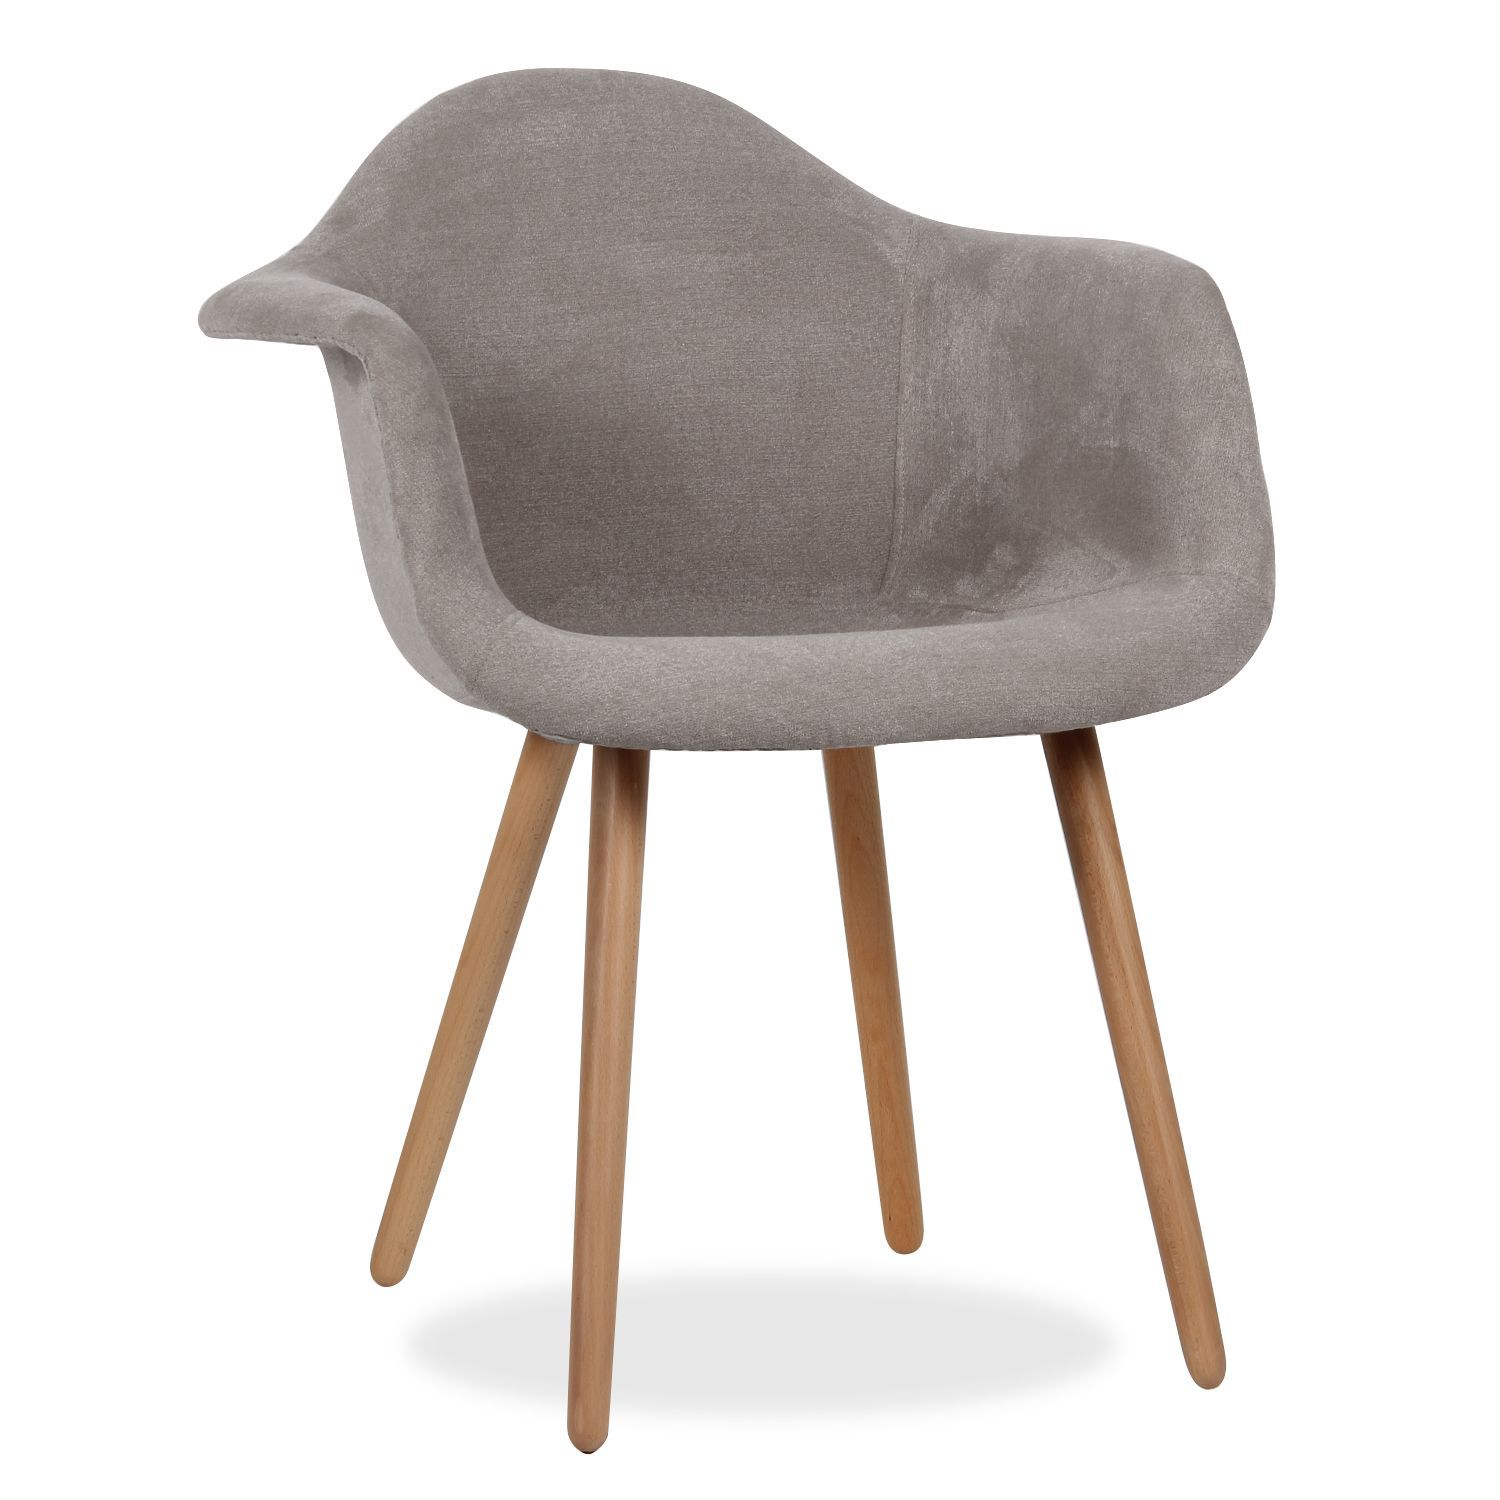 Inspiriert vom stuhl dsw von charles ray eames for Chaise wooden arms